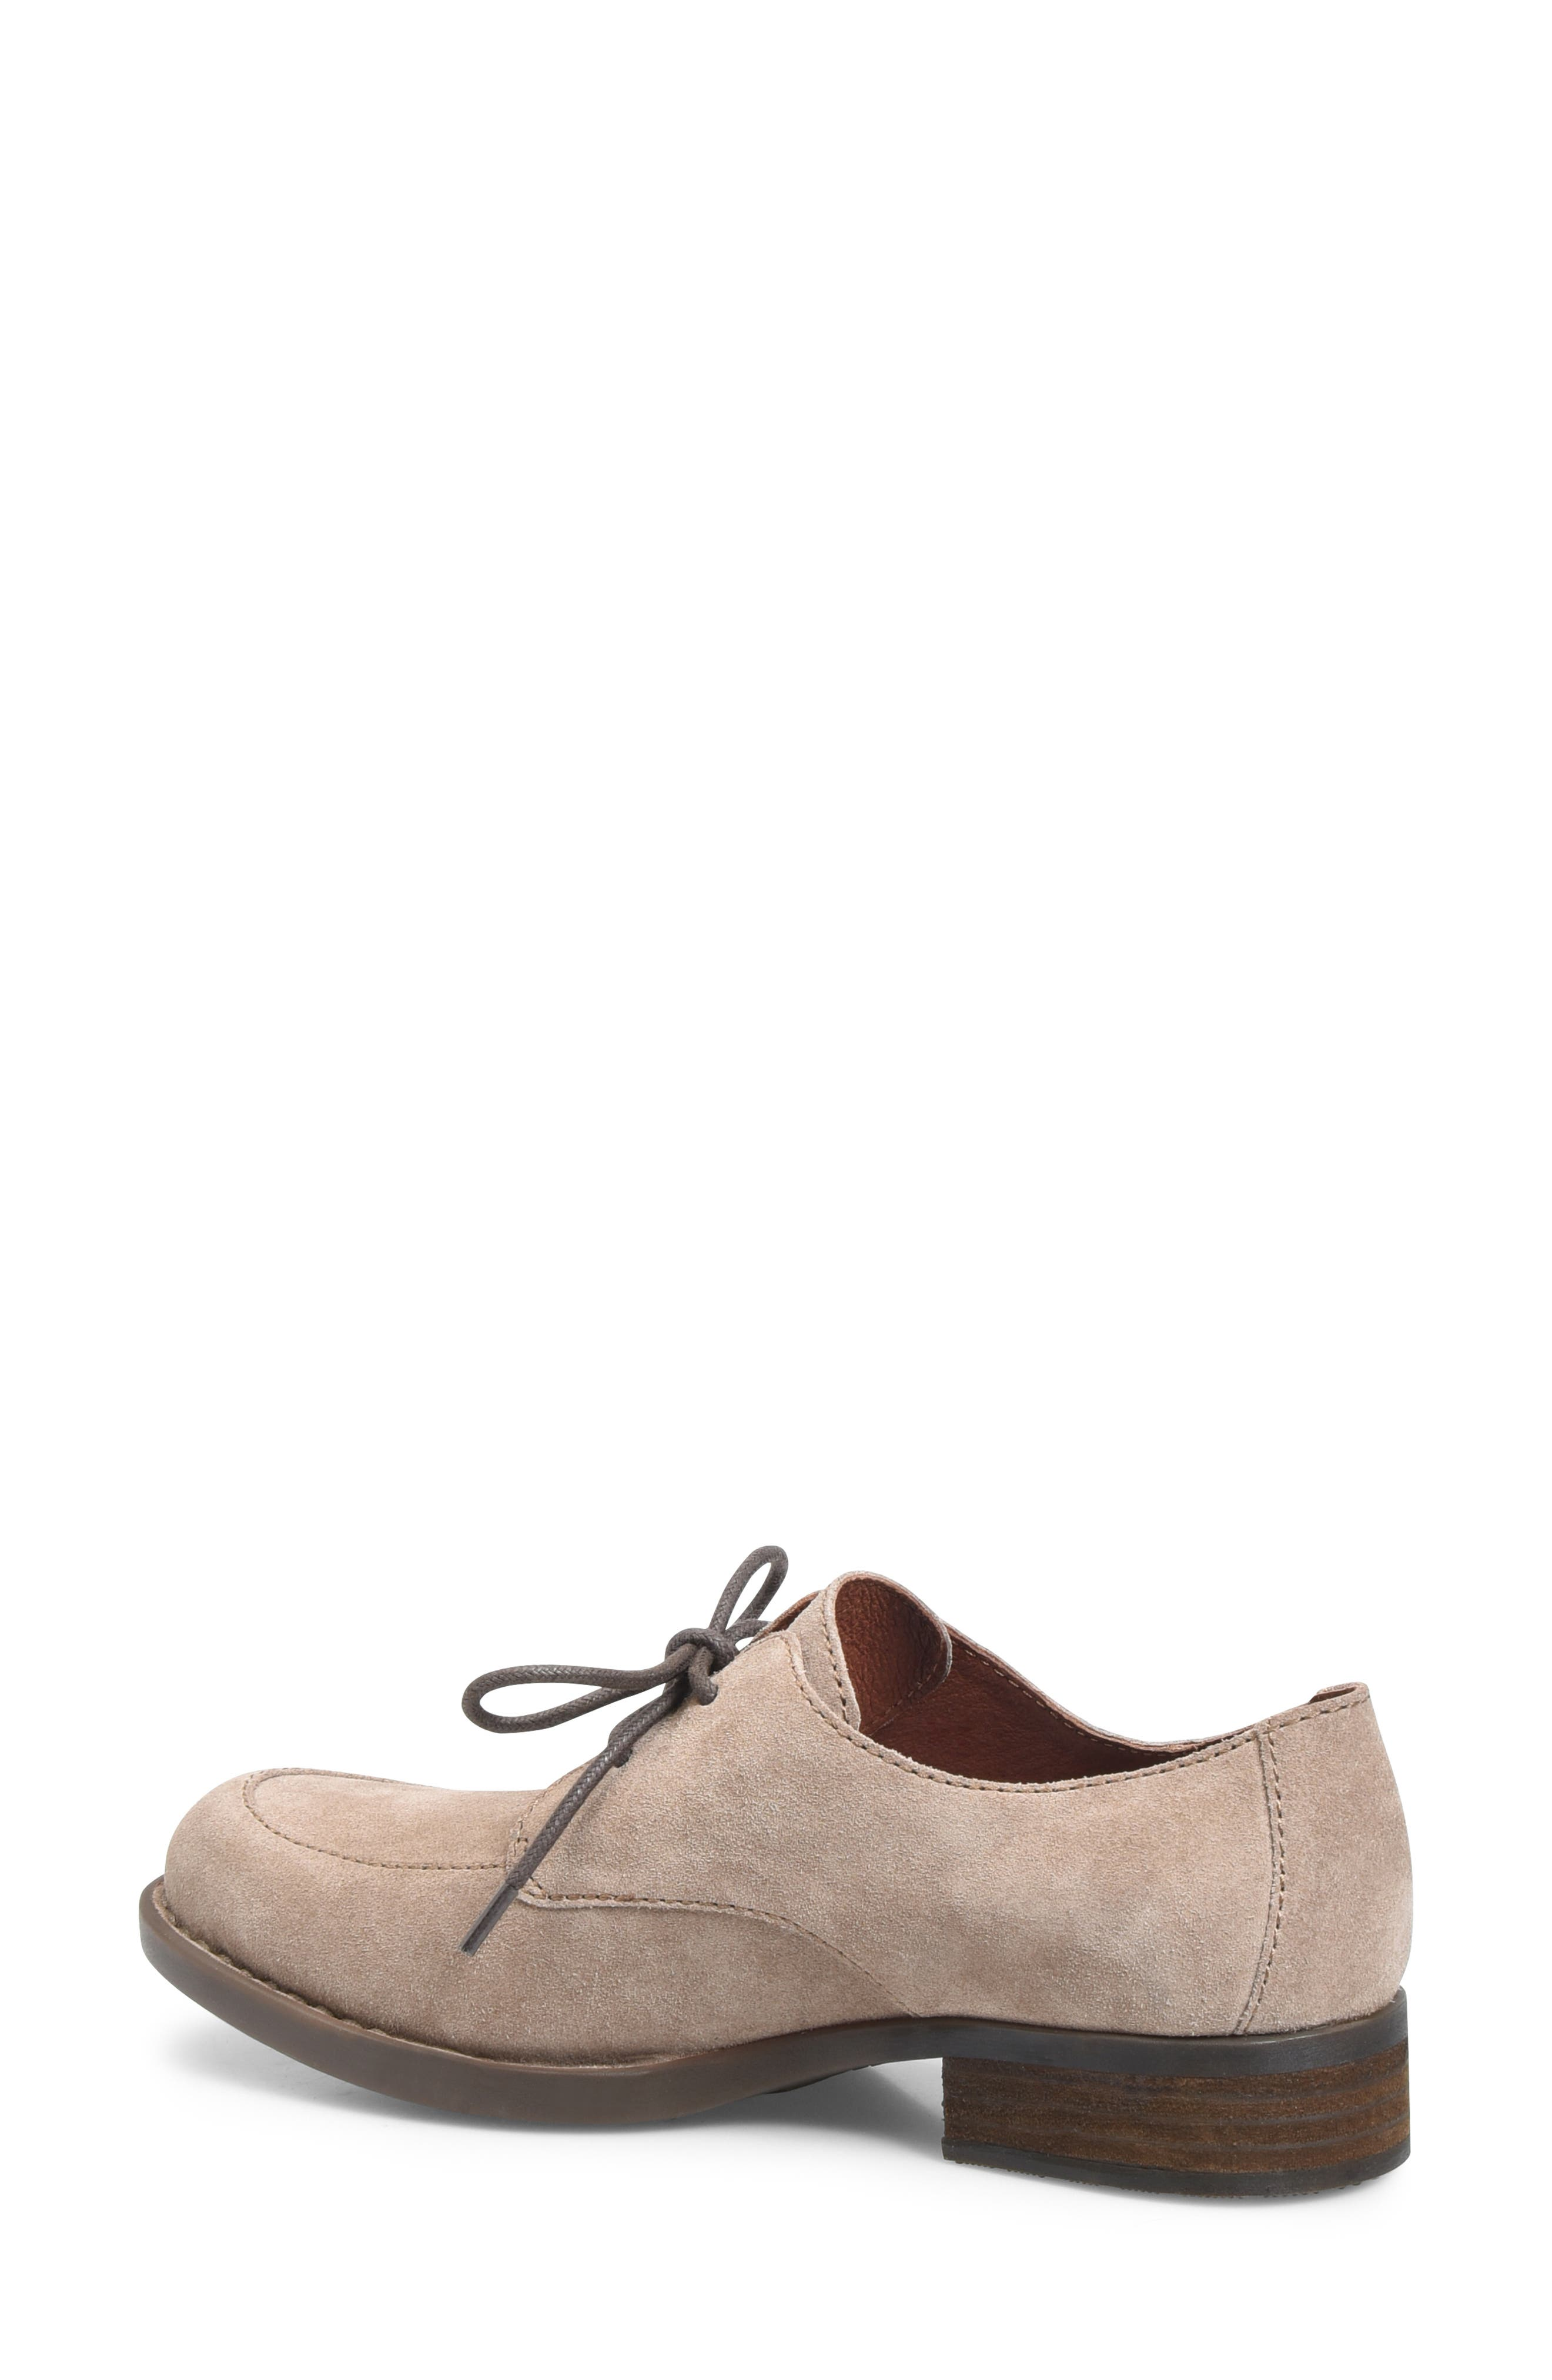 Rora Derby,                             Alternate thumbnail 2, color,                             Taupe Suede